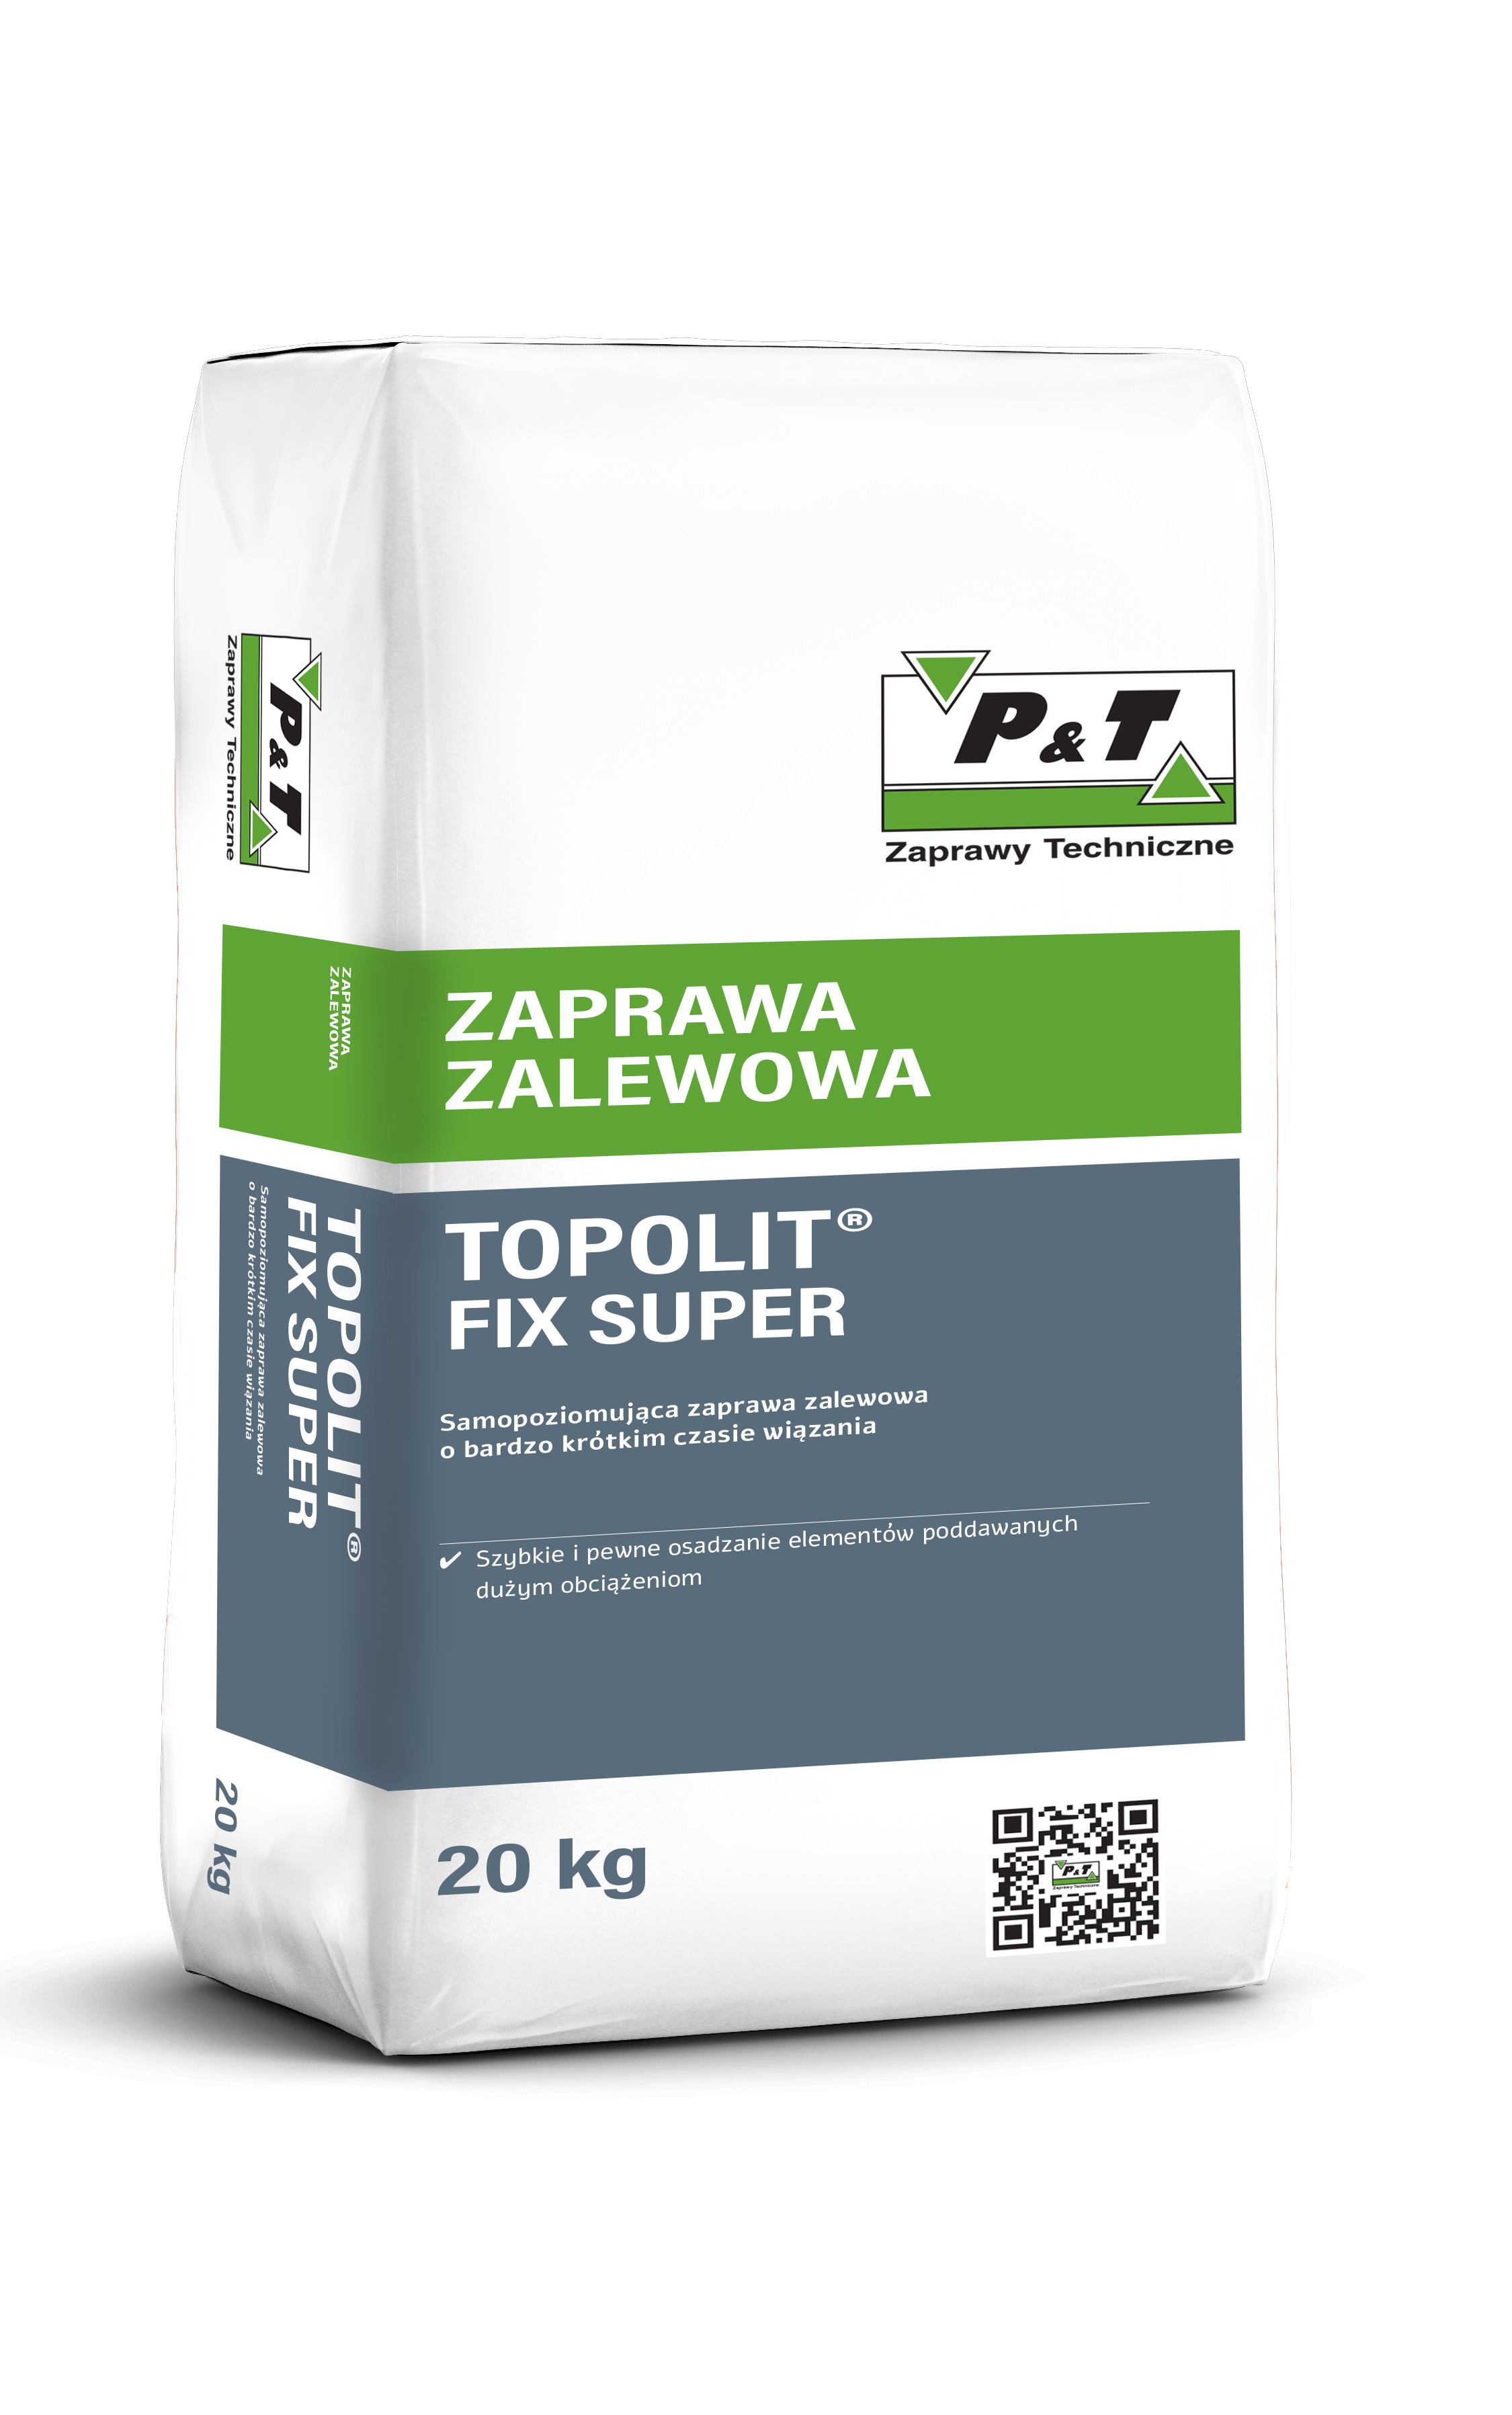 Topolit Fix Super